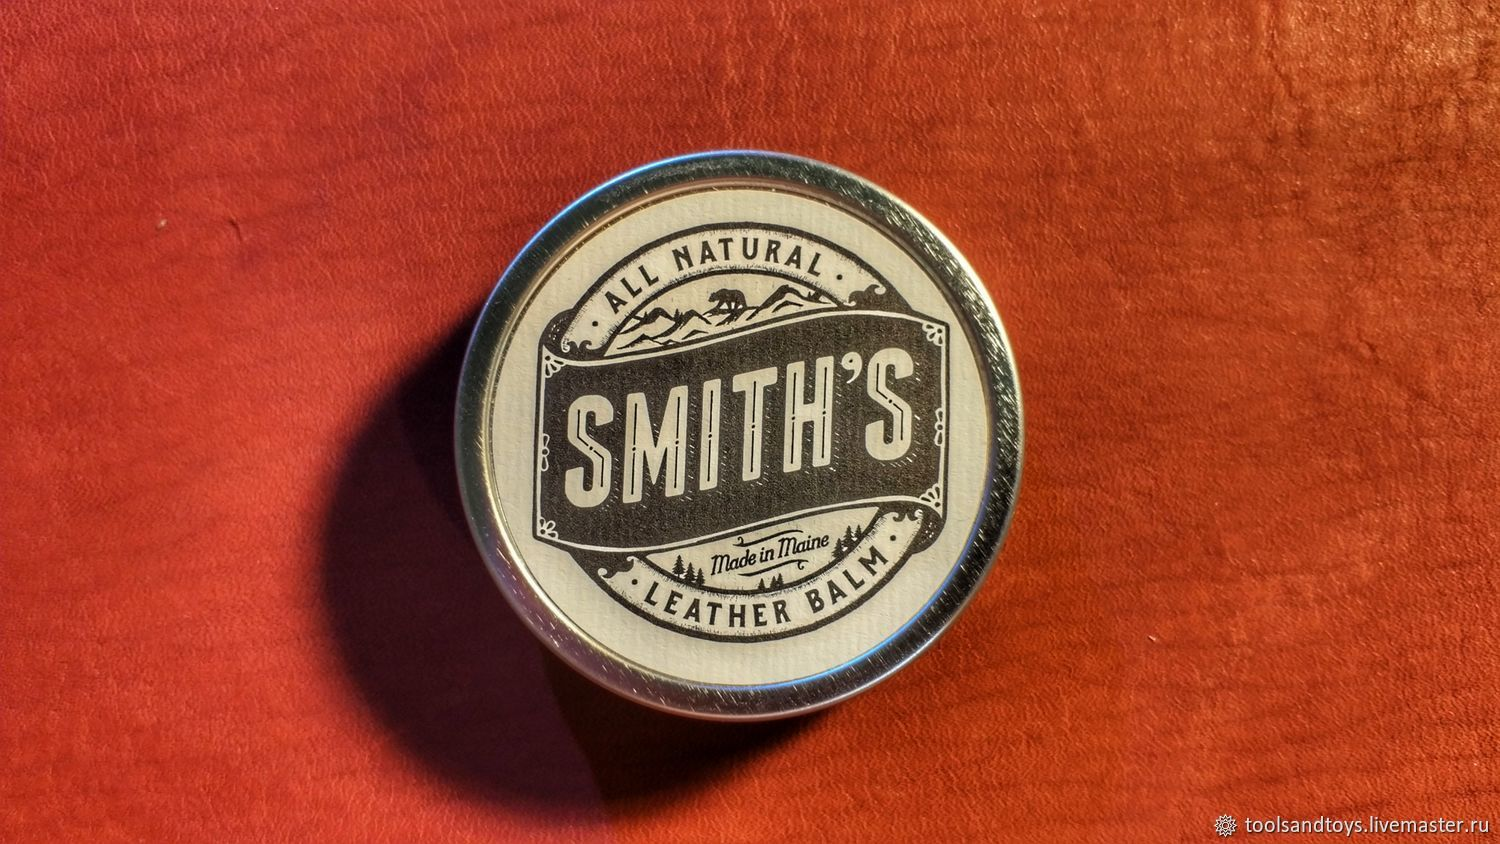 Smiths Leather Balm  Бальзам Смита, Материалы для работы с кожей, Санкт-Петербург,  Фото №1